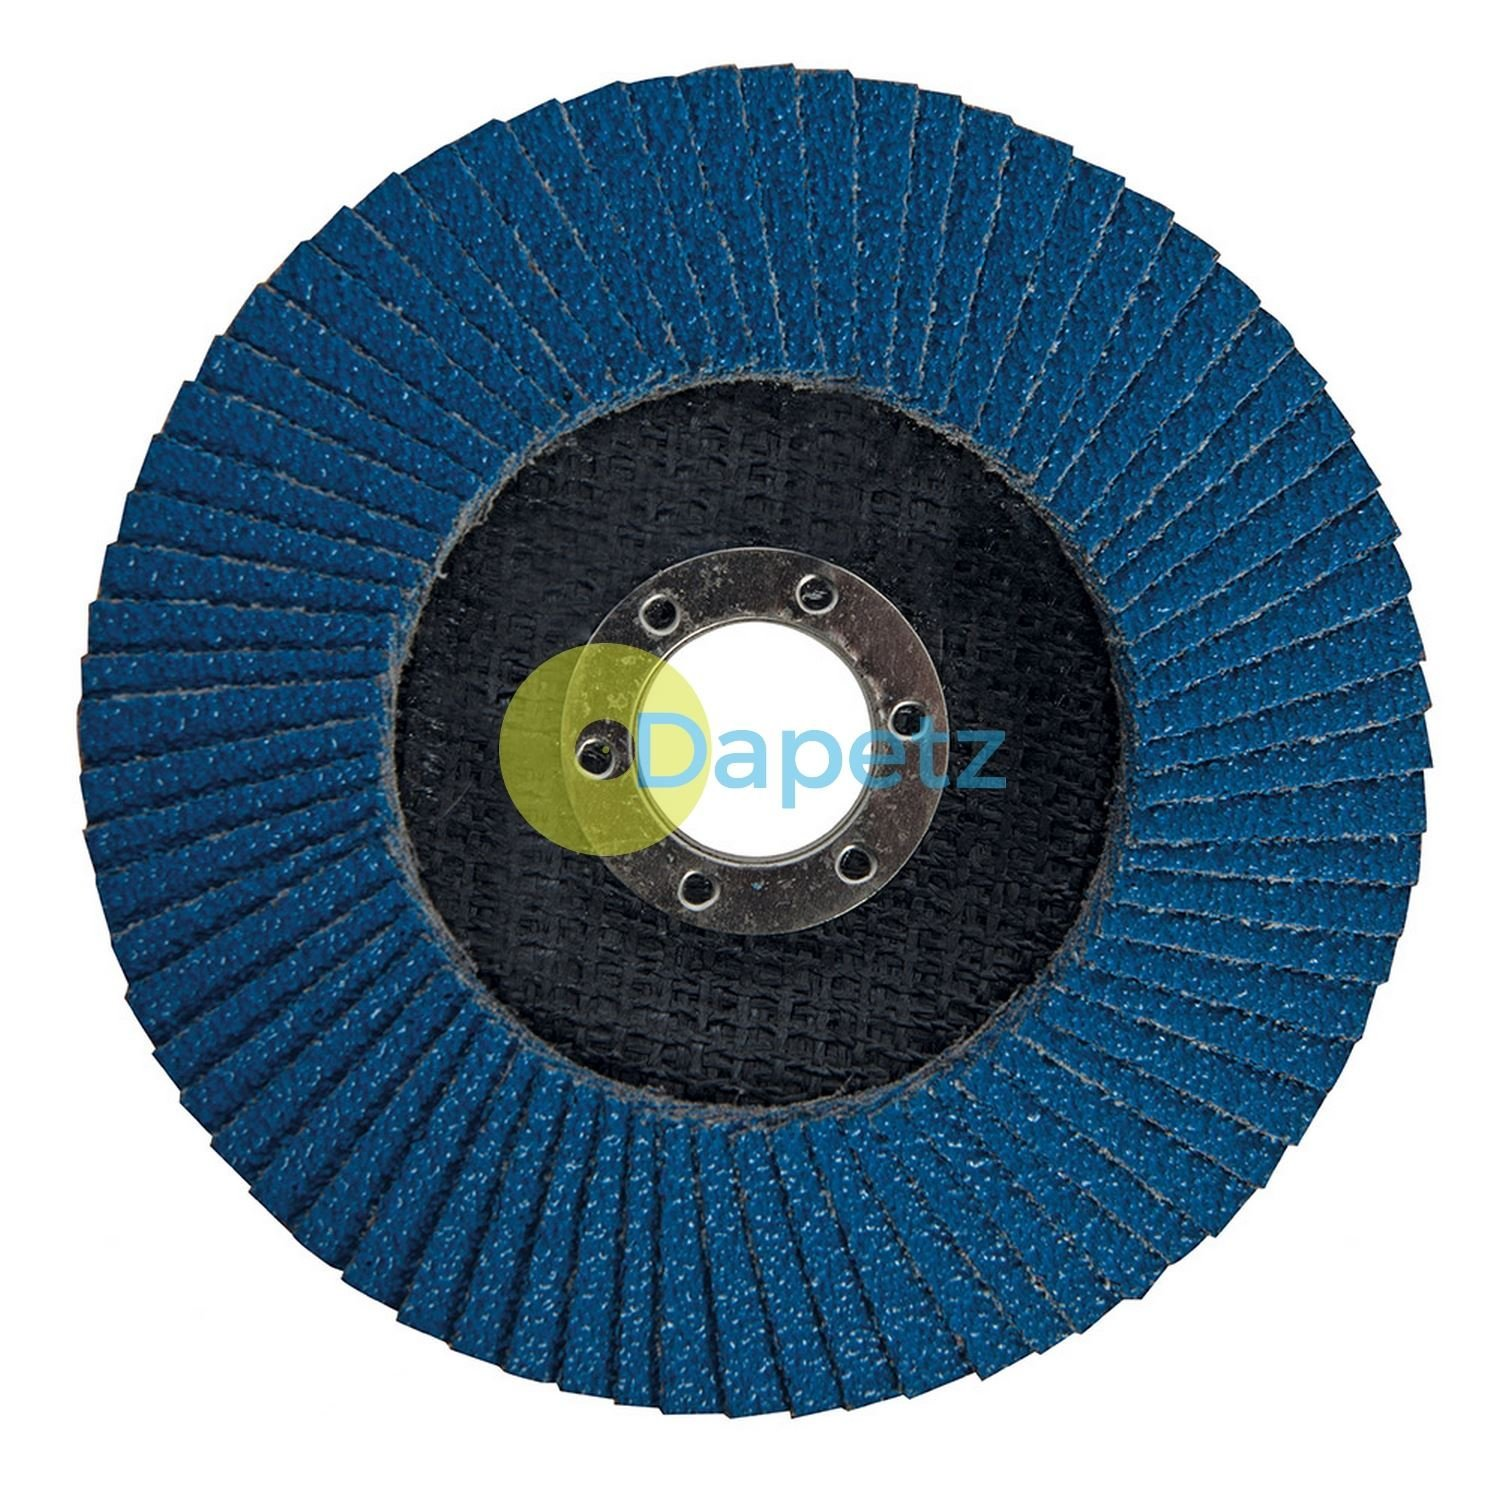 Dapetz Zirconium Flap Disc 125mm Sanding DIY - 40 Grit Heavy Duty Zirconium Flap Disc